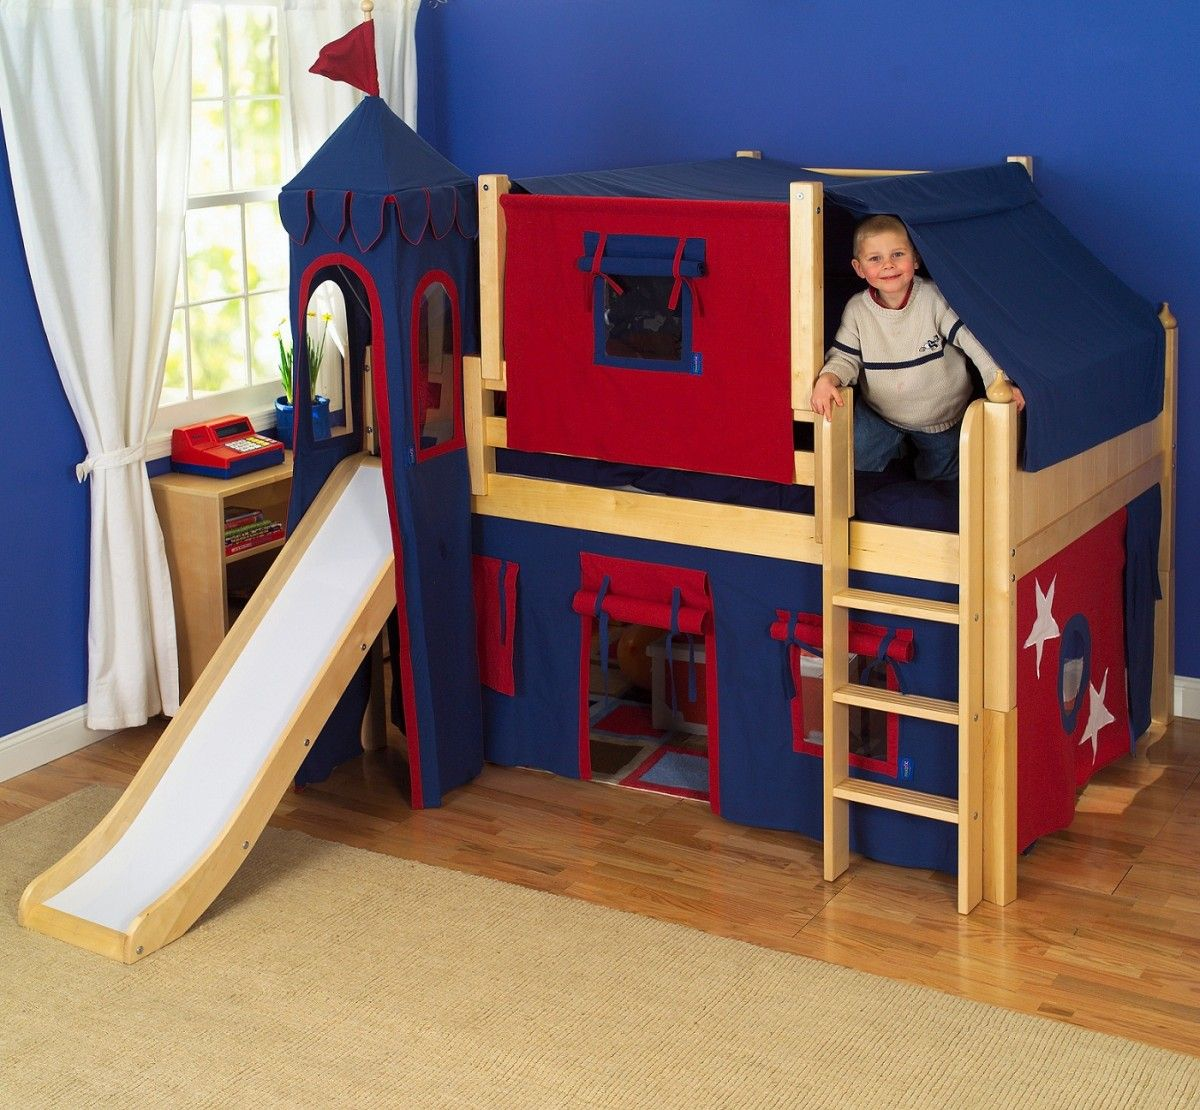 Trendy Toddler Room Ideas Are You Losing That Fire In Your Relationship By Means Of Partner To Get A True Husband Or